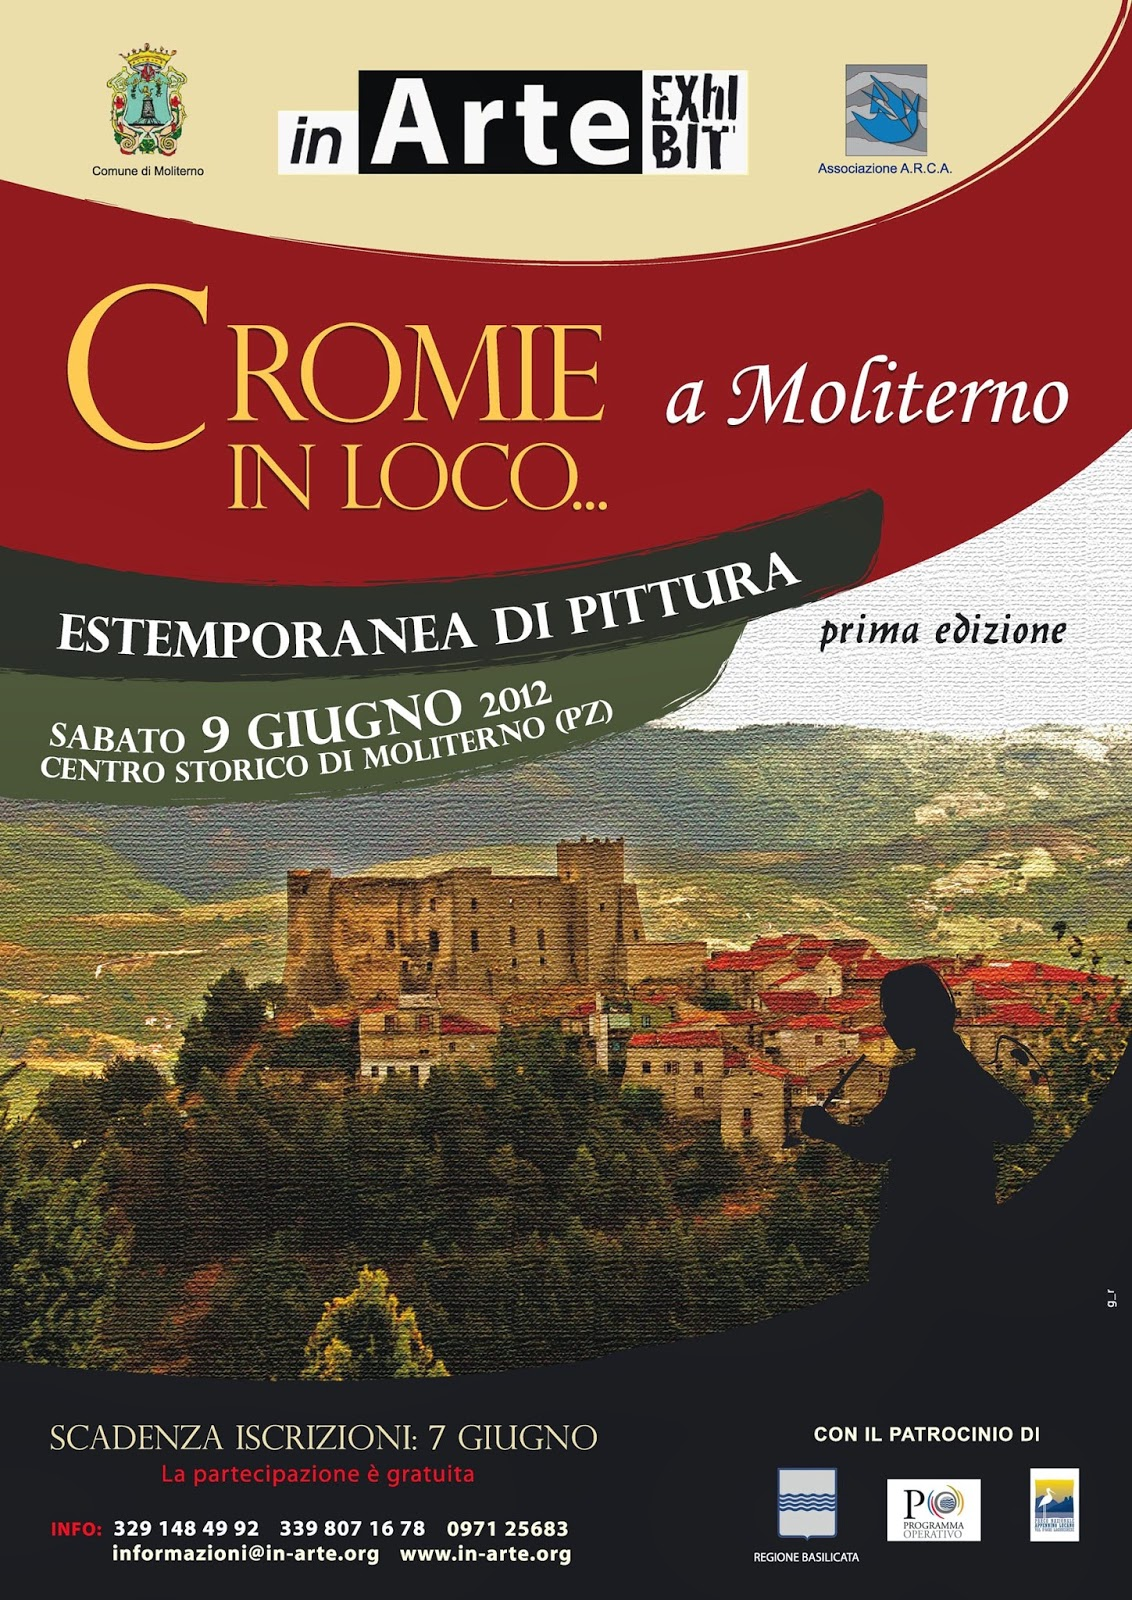 http://inarte-blog.blogspot.it/2012/06/cromie-in-loco-moliterno.html